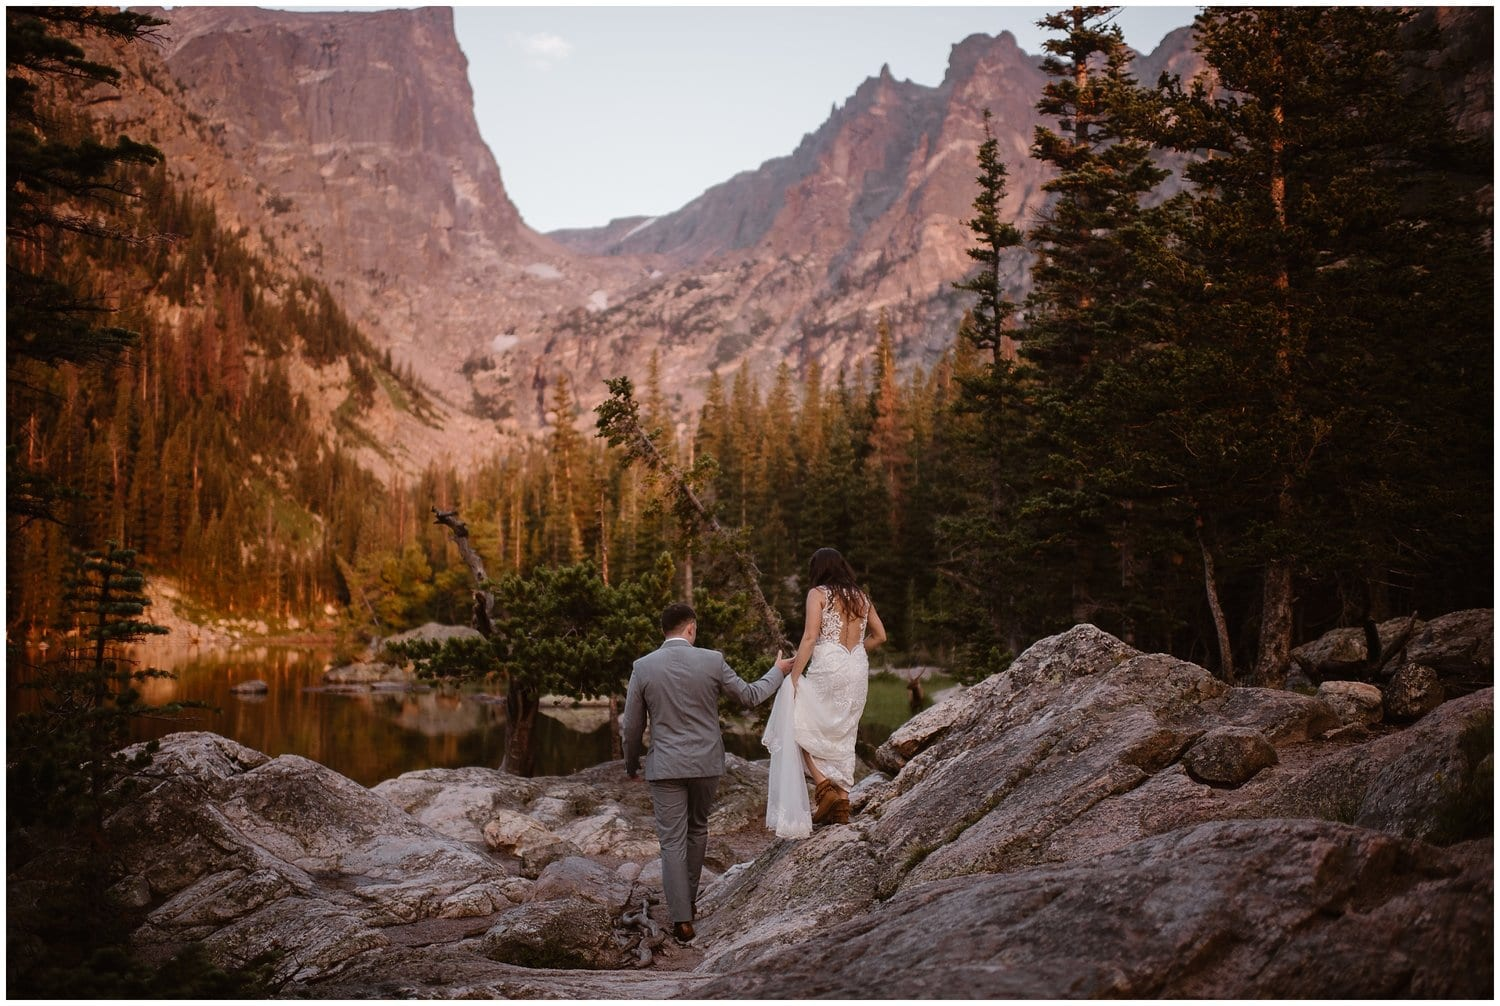 A bride and groom walk hand in hand in the forest on their wedding day.